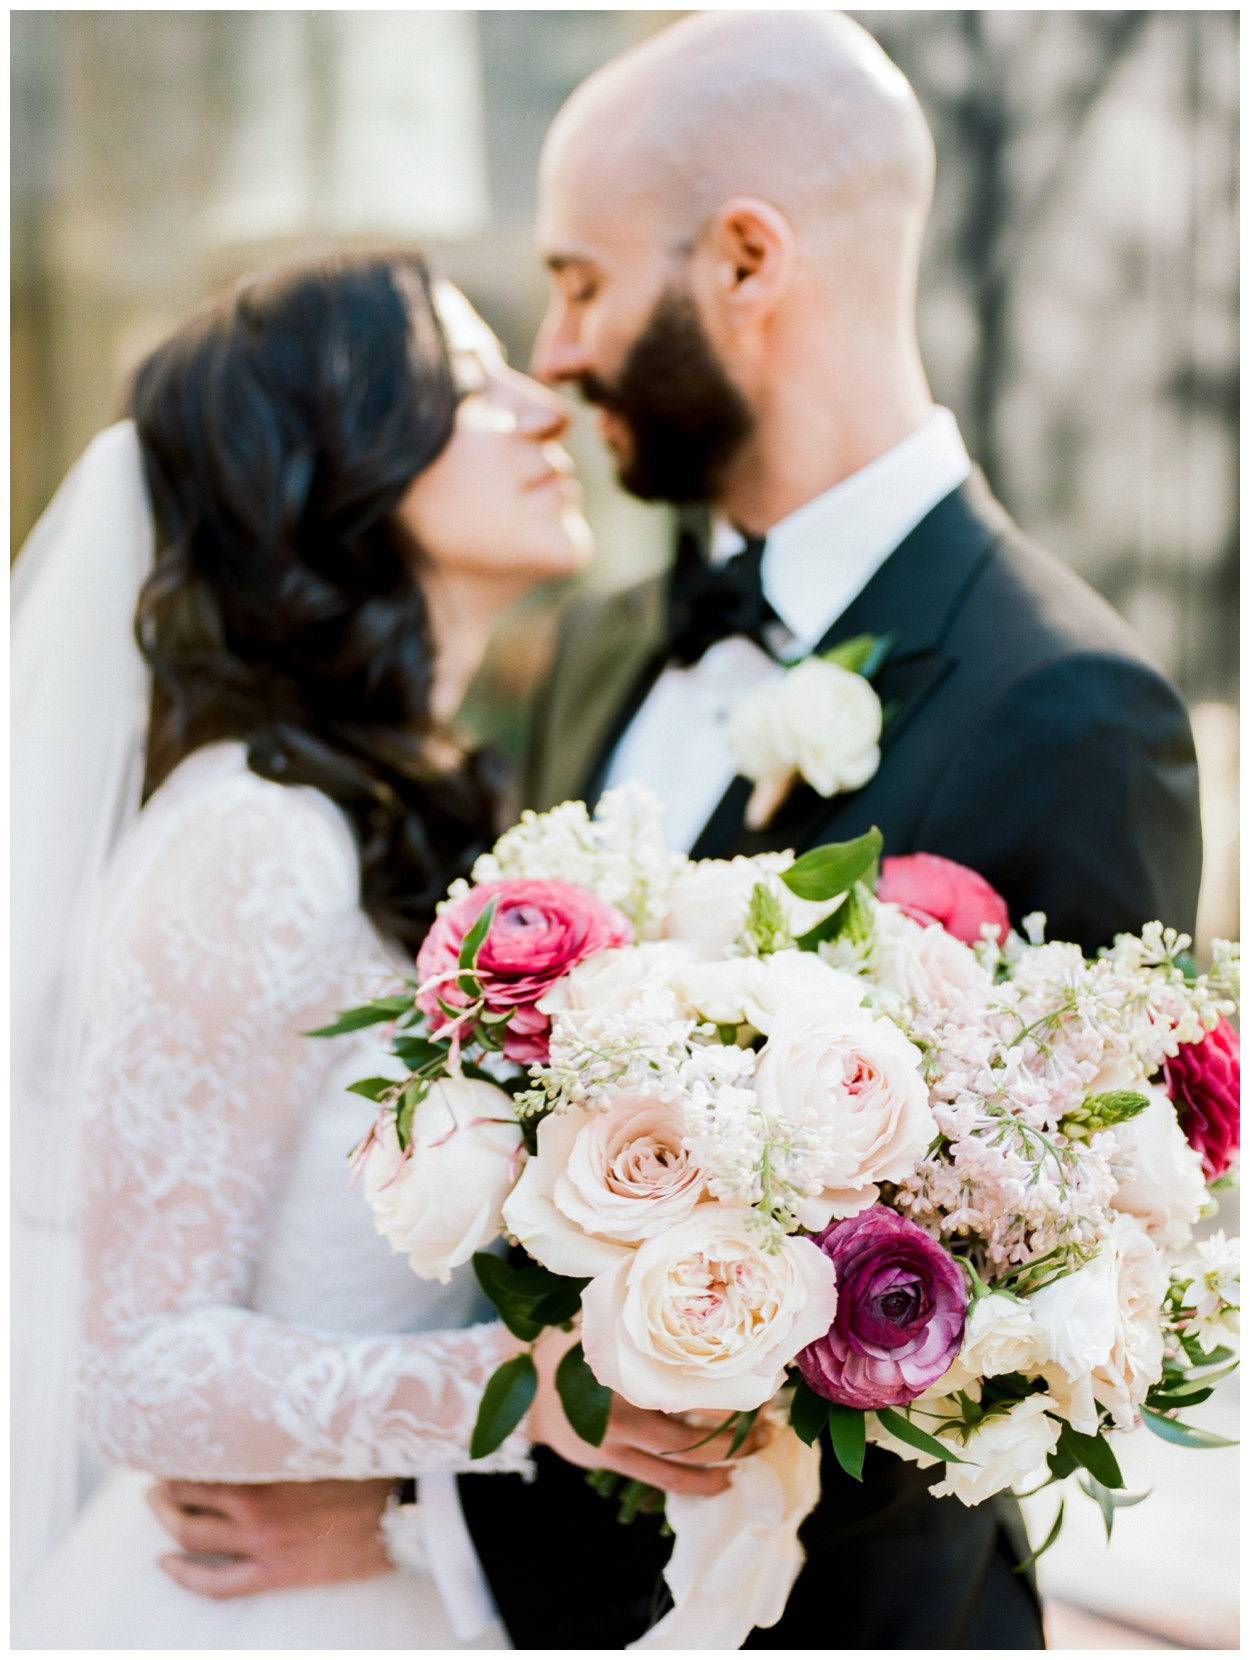 Spring Wedding in Shades of Pink at the Park Hyatt Washington DC by fine art wedding photographer Lissa ryan Photography kiss with Sweet Root Village bouquet